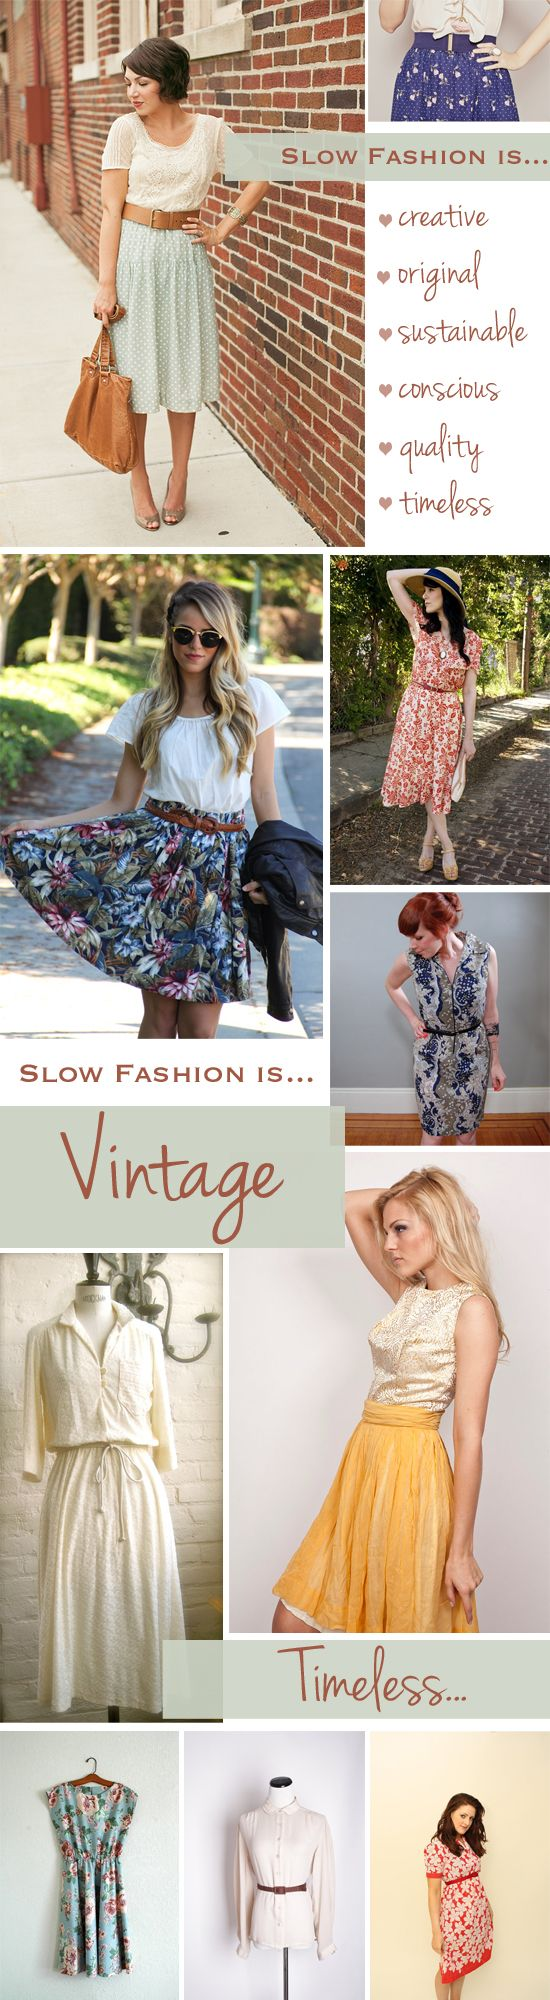 Why Slow Fashion is Awesome